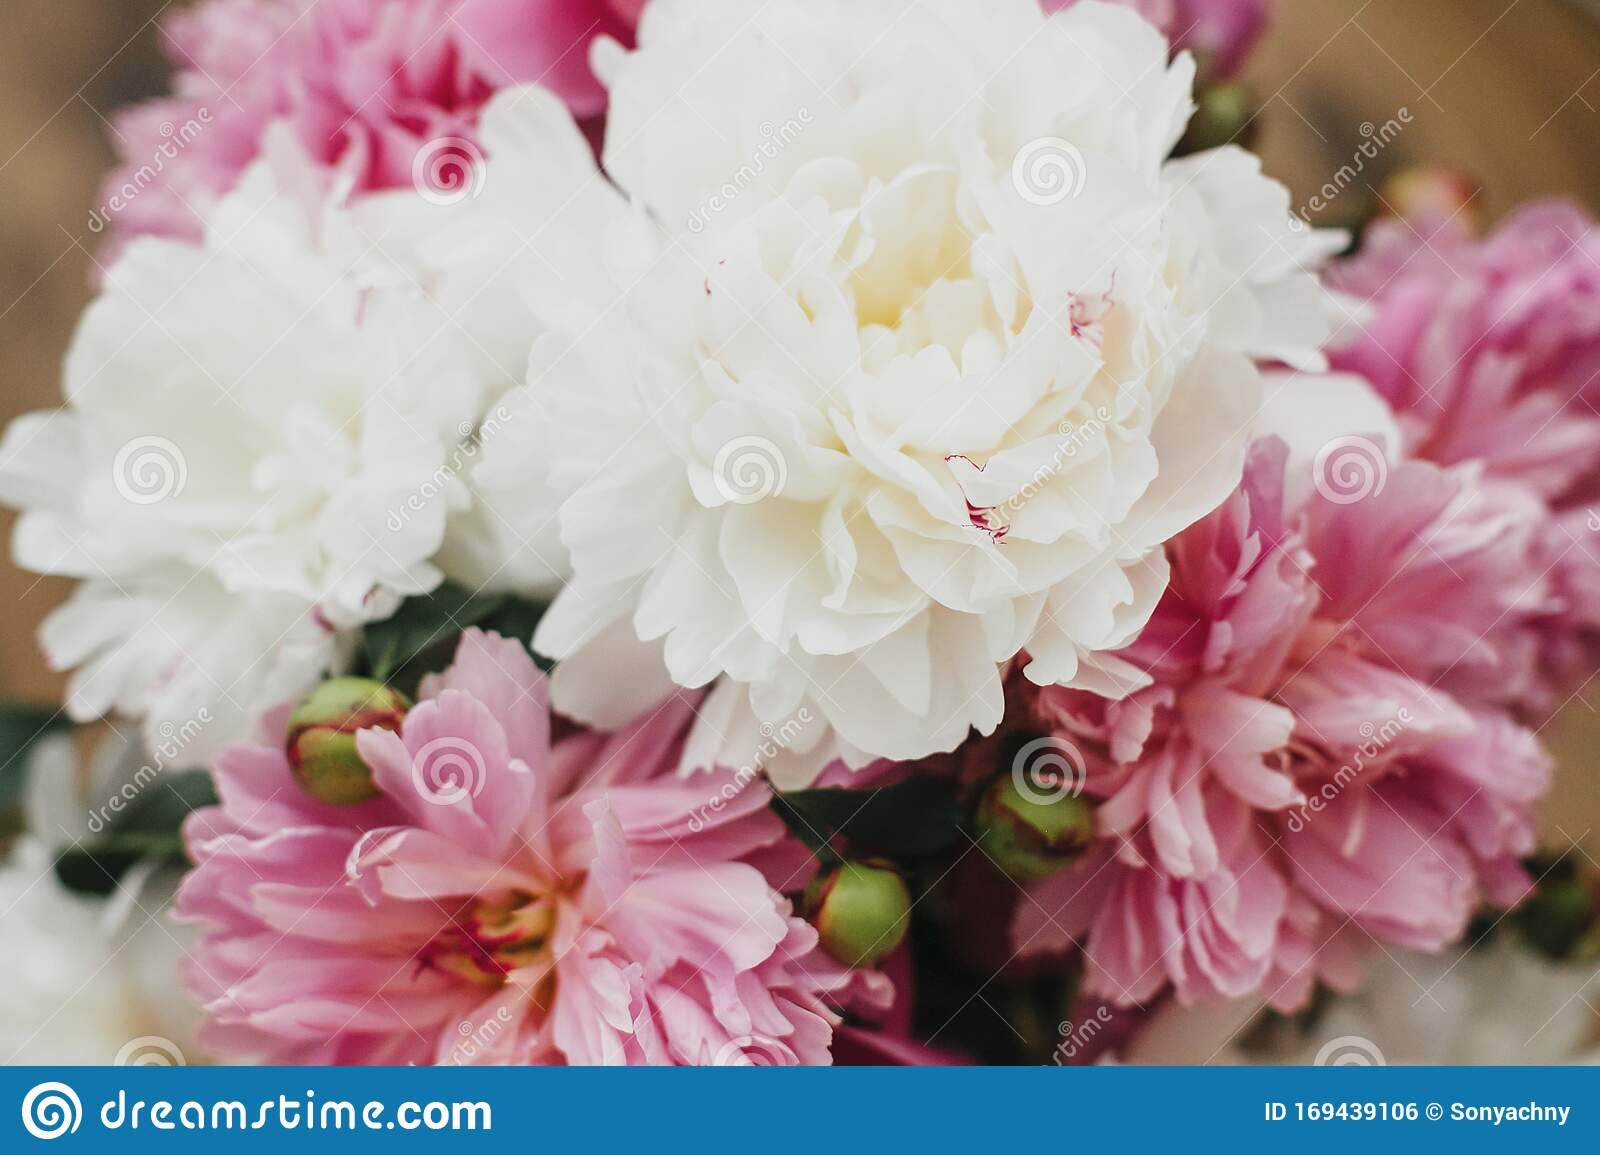 Beautiful Peony Bouquet In Sunny Light Stylish Pink And White Peonies On Wooden Background Hello Spring Happy Mothers Day Stock Photo Image Of Card Beauty 169439106